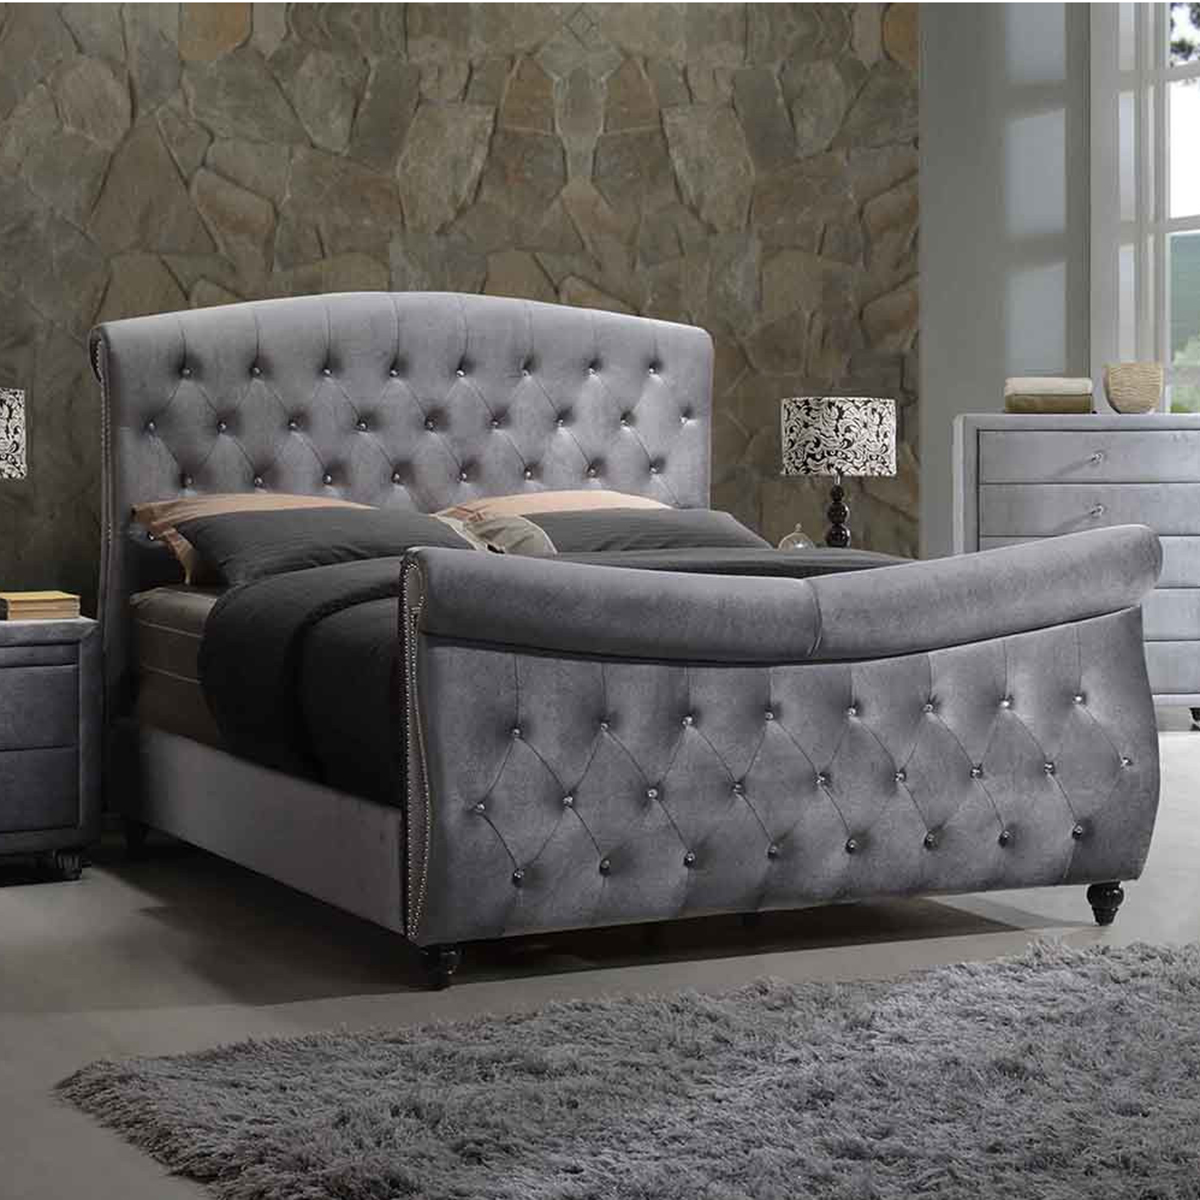 Hudson Grey Velvet King Sleigh Bed W Crystal Tufted Headboard Footboard By Meridian Furniture